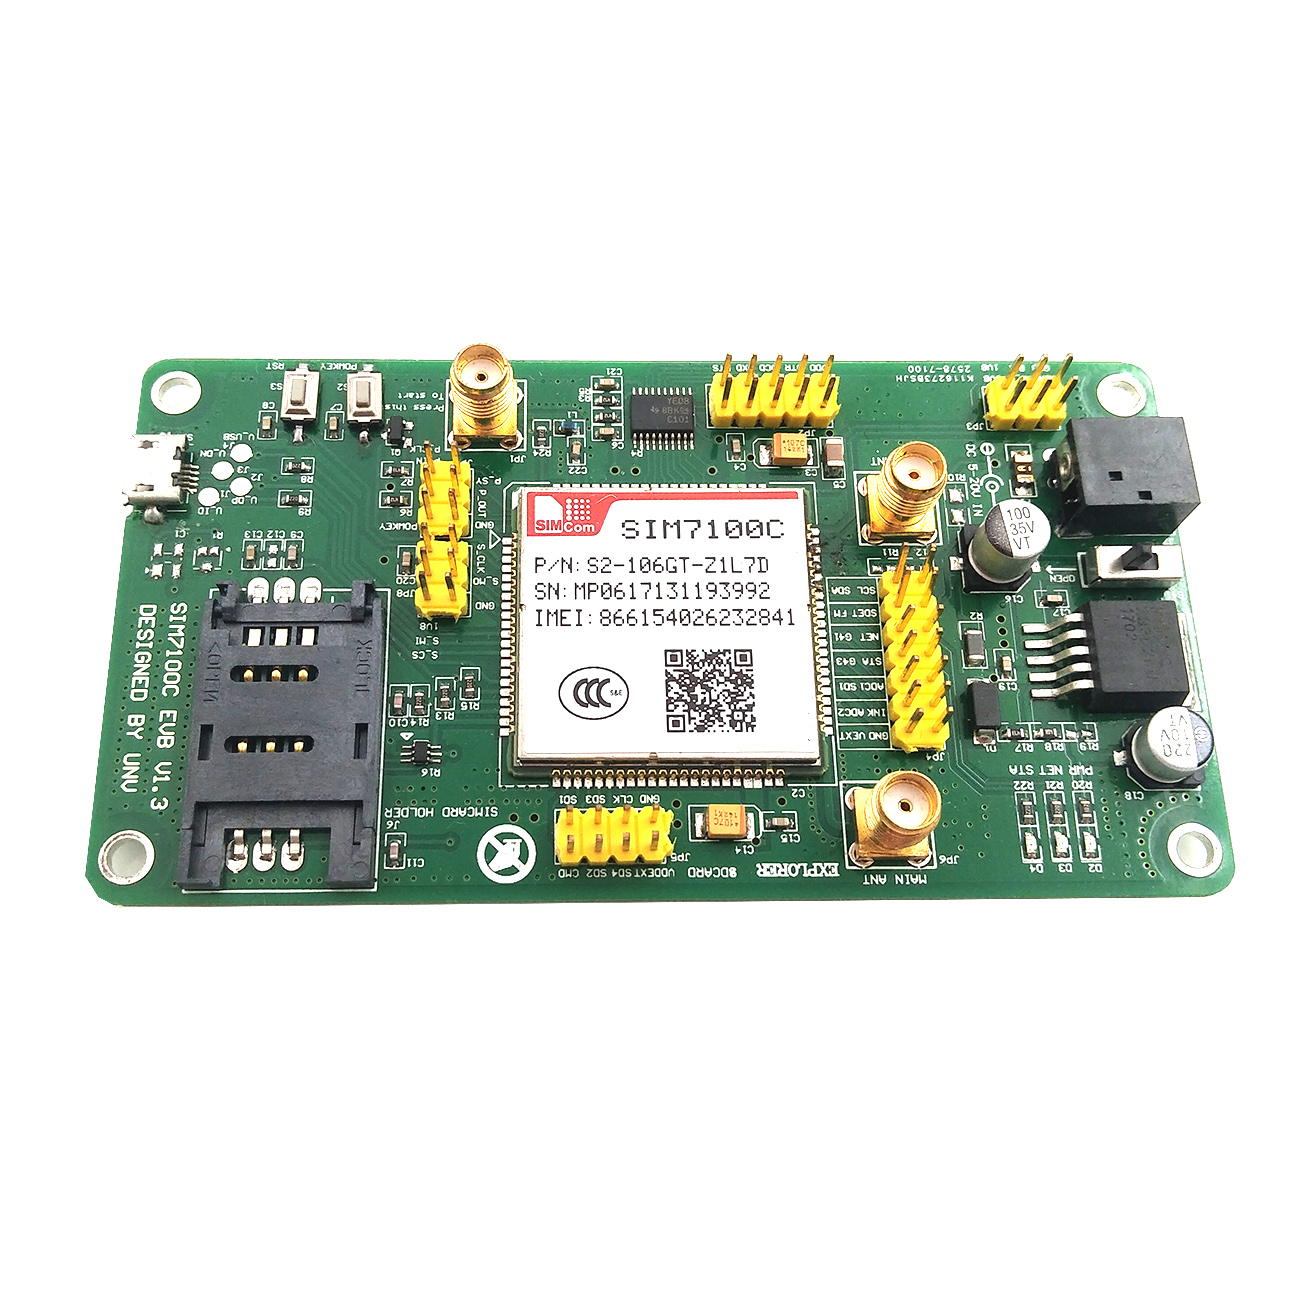 Image 2 - New SIM7100C PCIE 4G 4g 3g 2g communication module 5 mold LTE TDD FDD GPS module-in Integrated Circuits from Electronic Components & Supplies